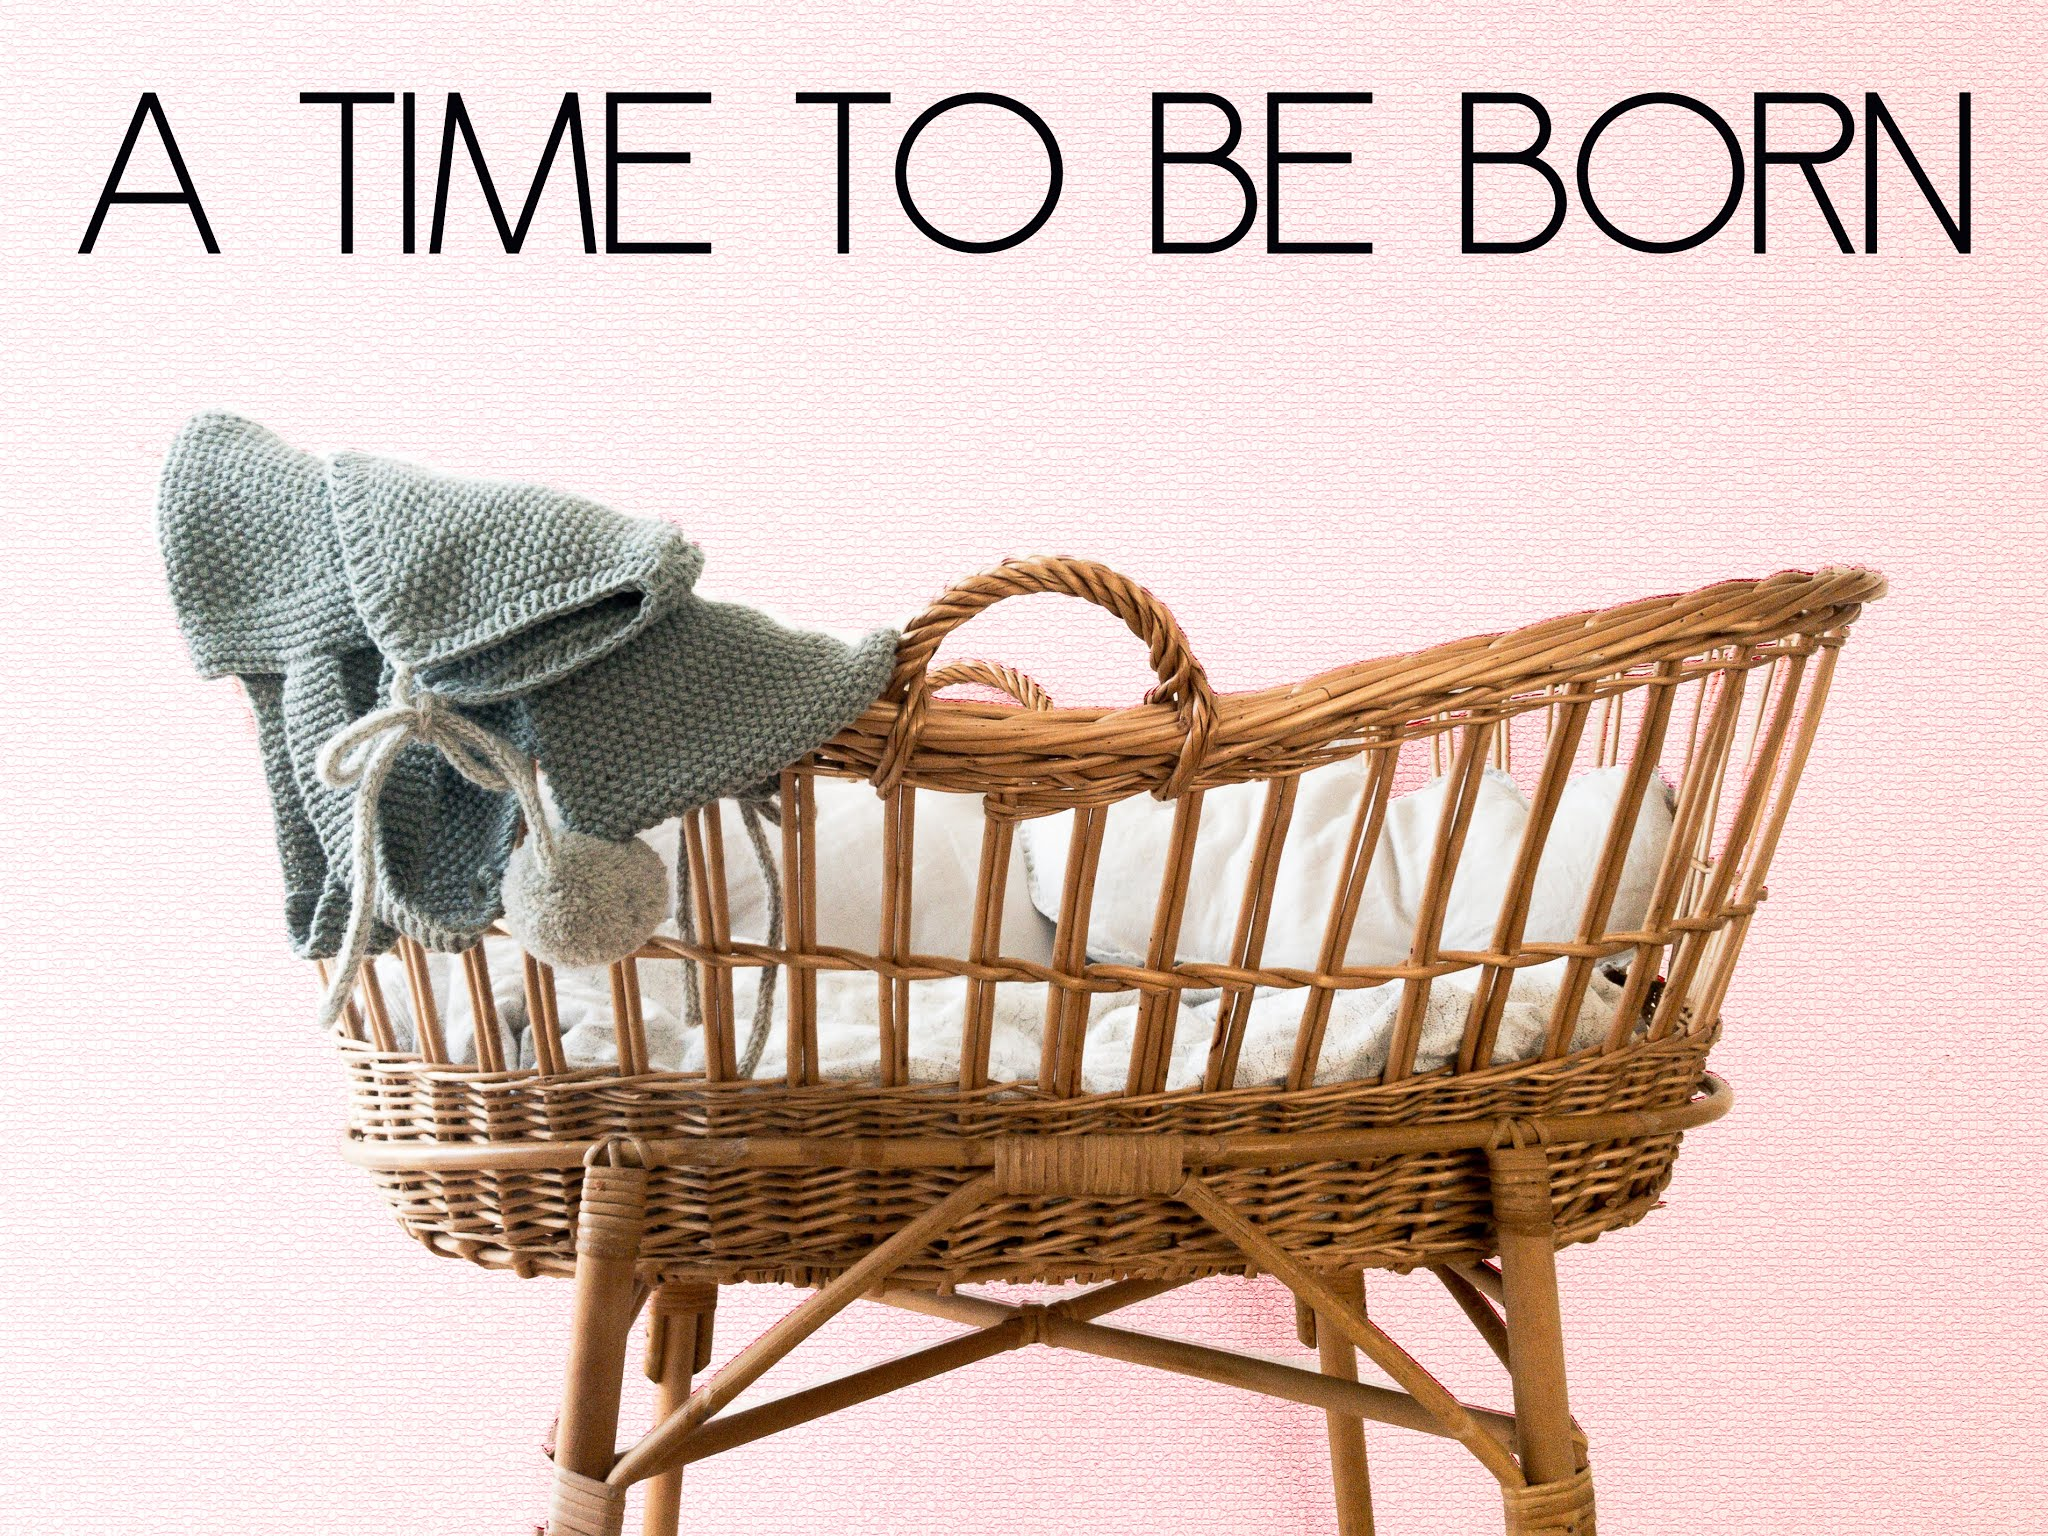 A Time To Be Born